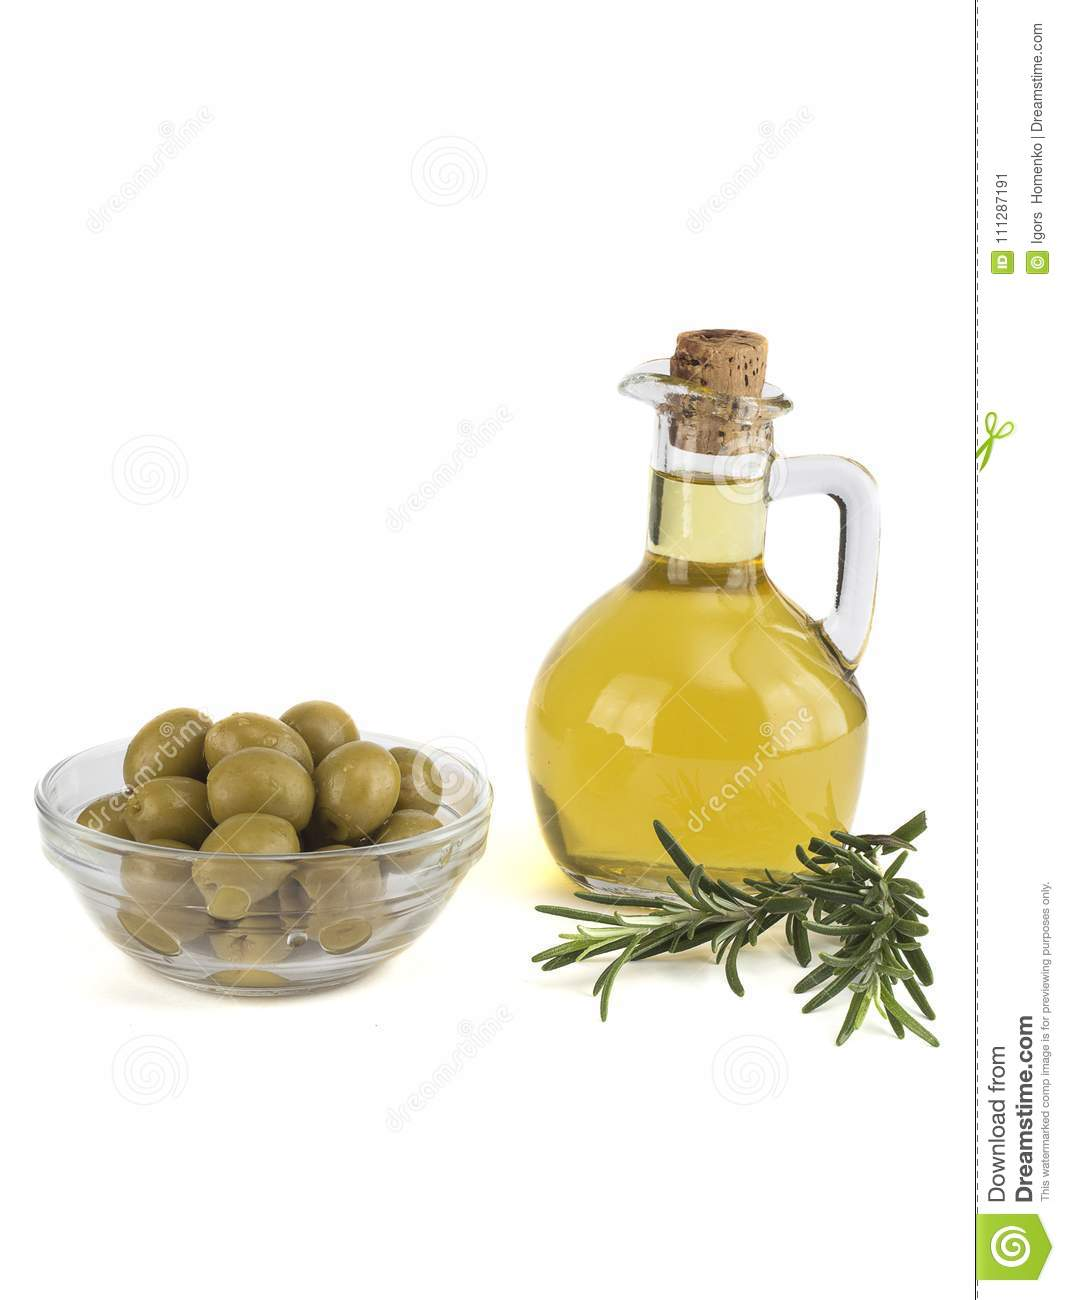 Olive Oil In A Bottle And Olives On A White Background